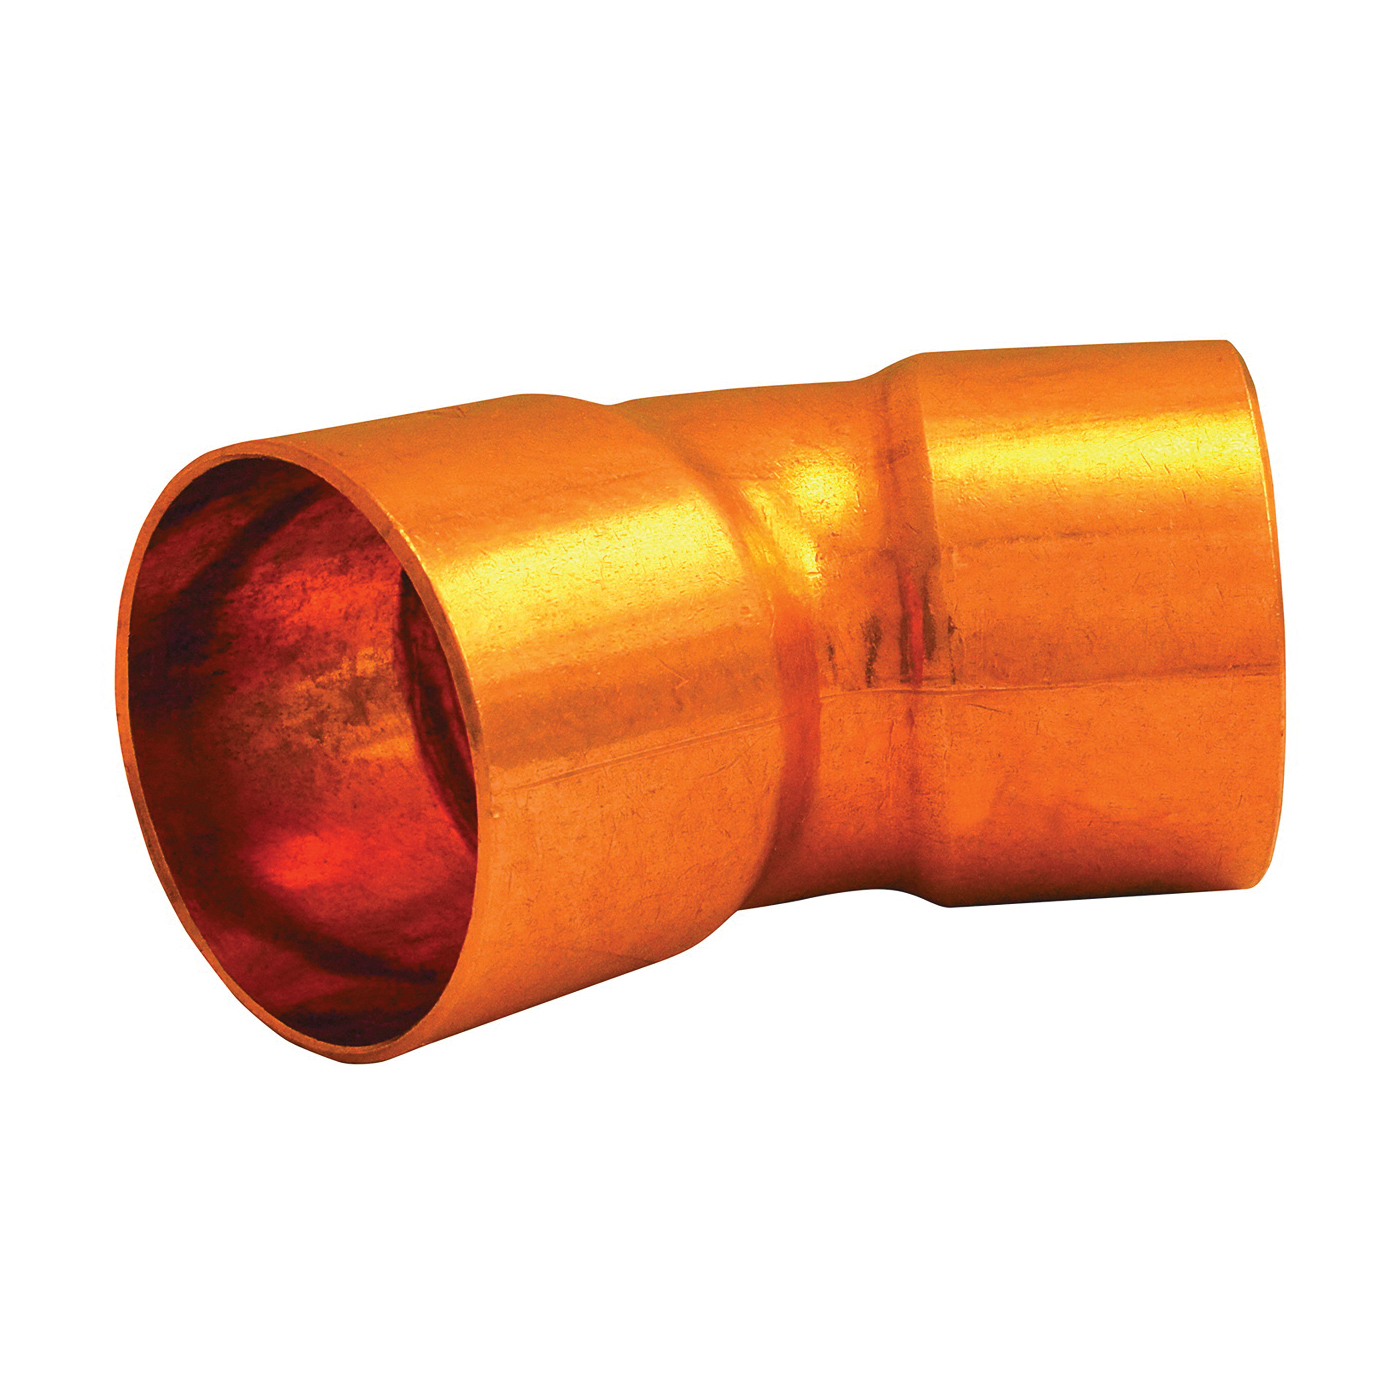 Picture of EPC 31120 Pipe Elbow, 1 in, Compression, 45 deg Angle, Wrot Copper